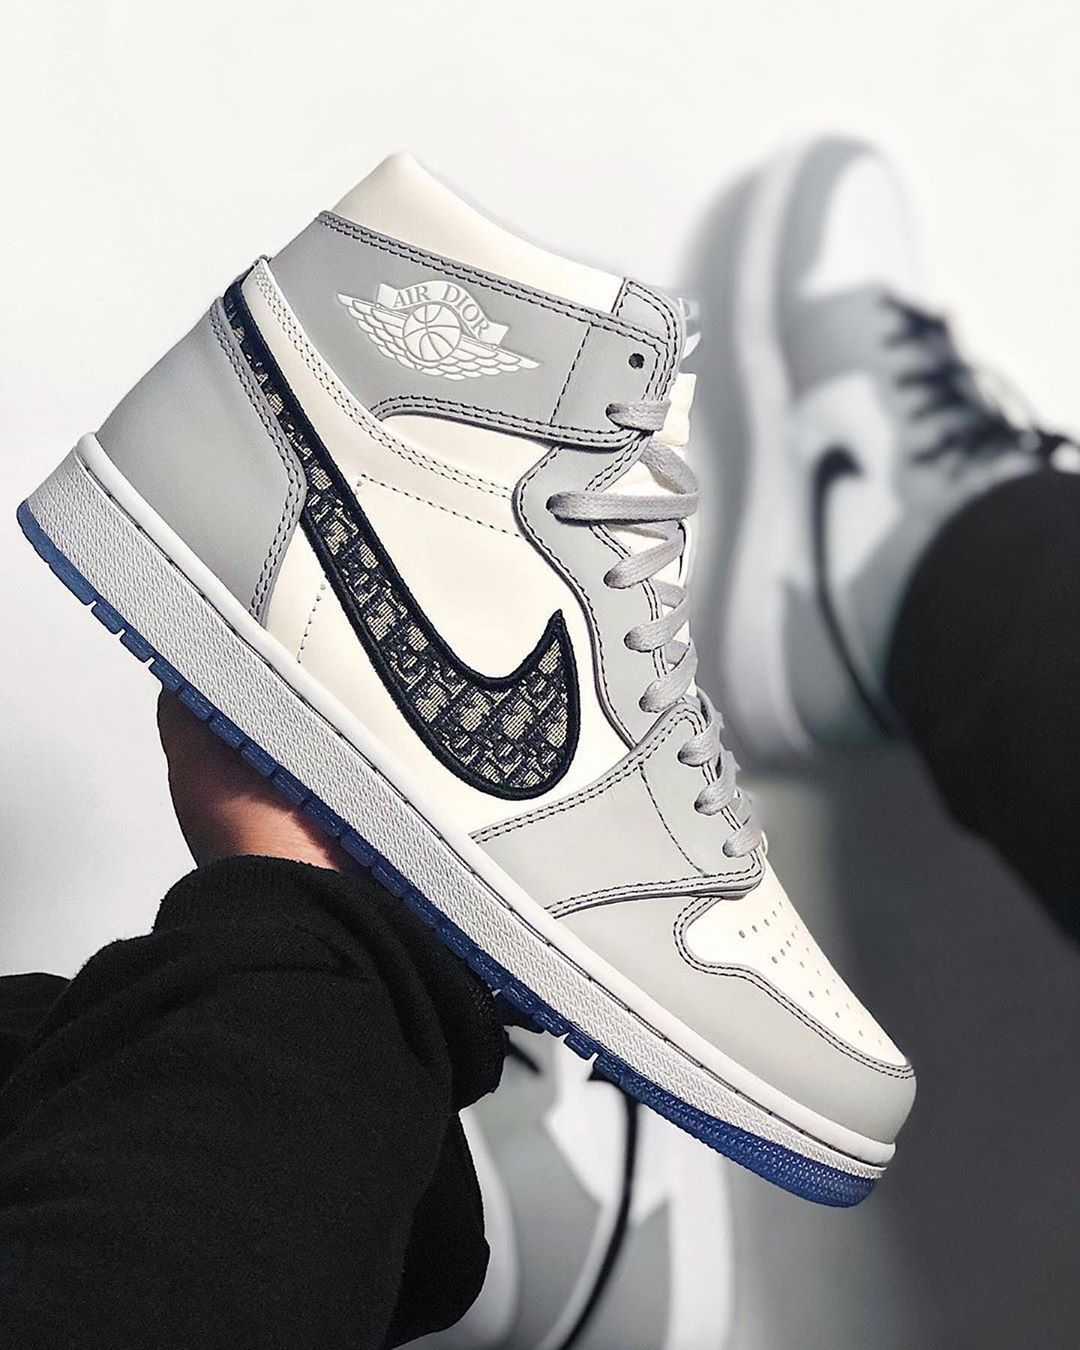 The Nike X Dior Air Jordan 1 Raffles Have Opened for Entry